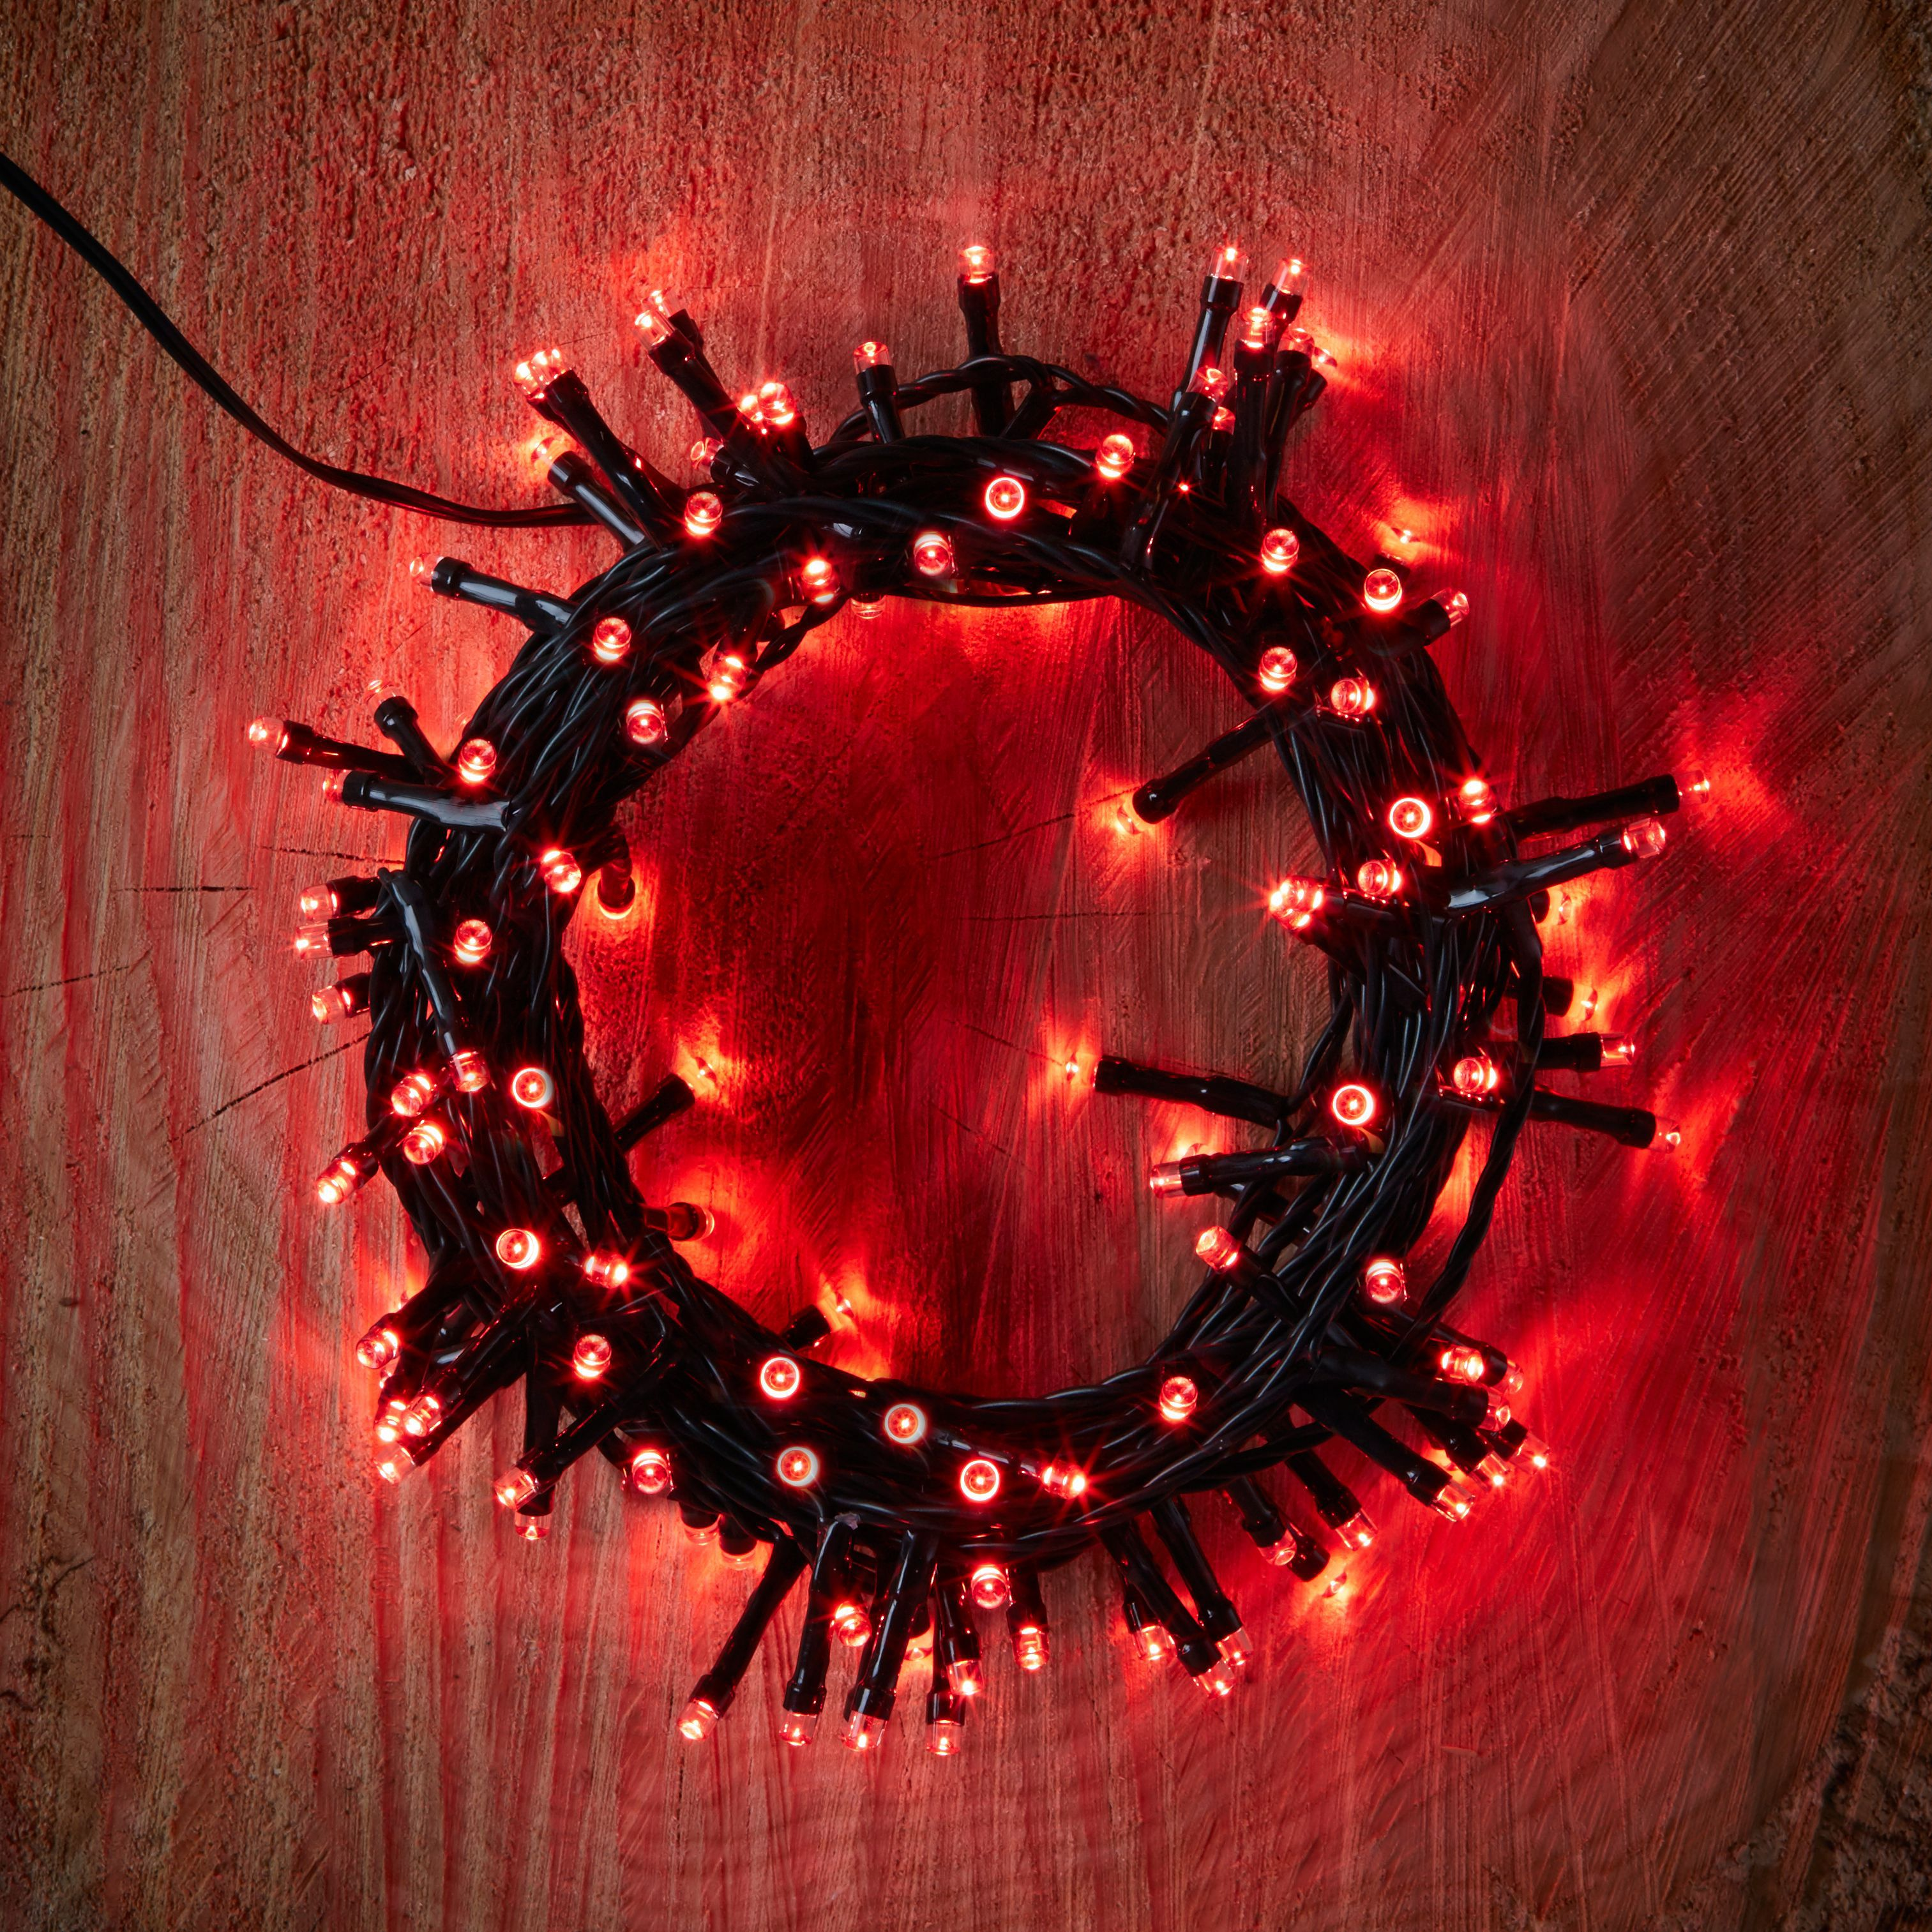 120 Red LED String Lights Departments DIY at B&Q